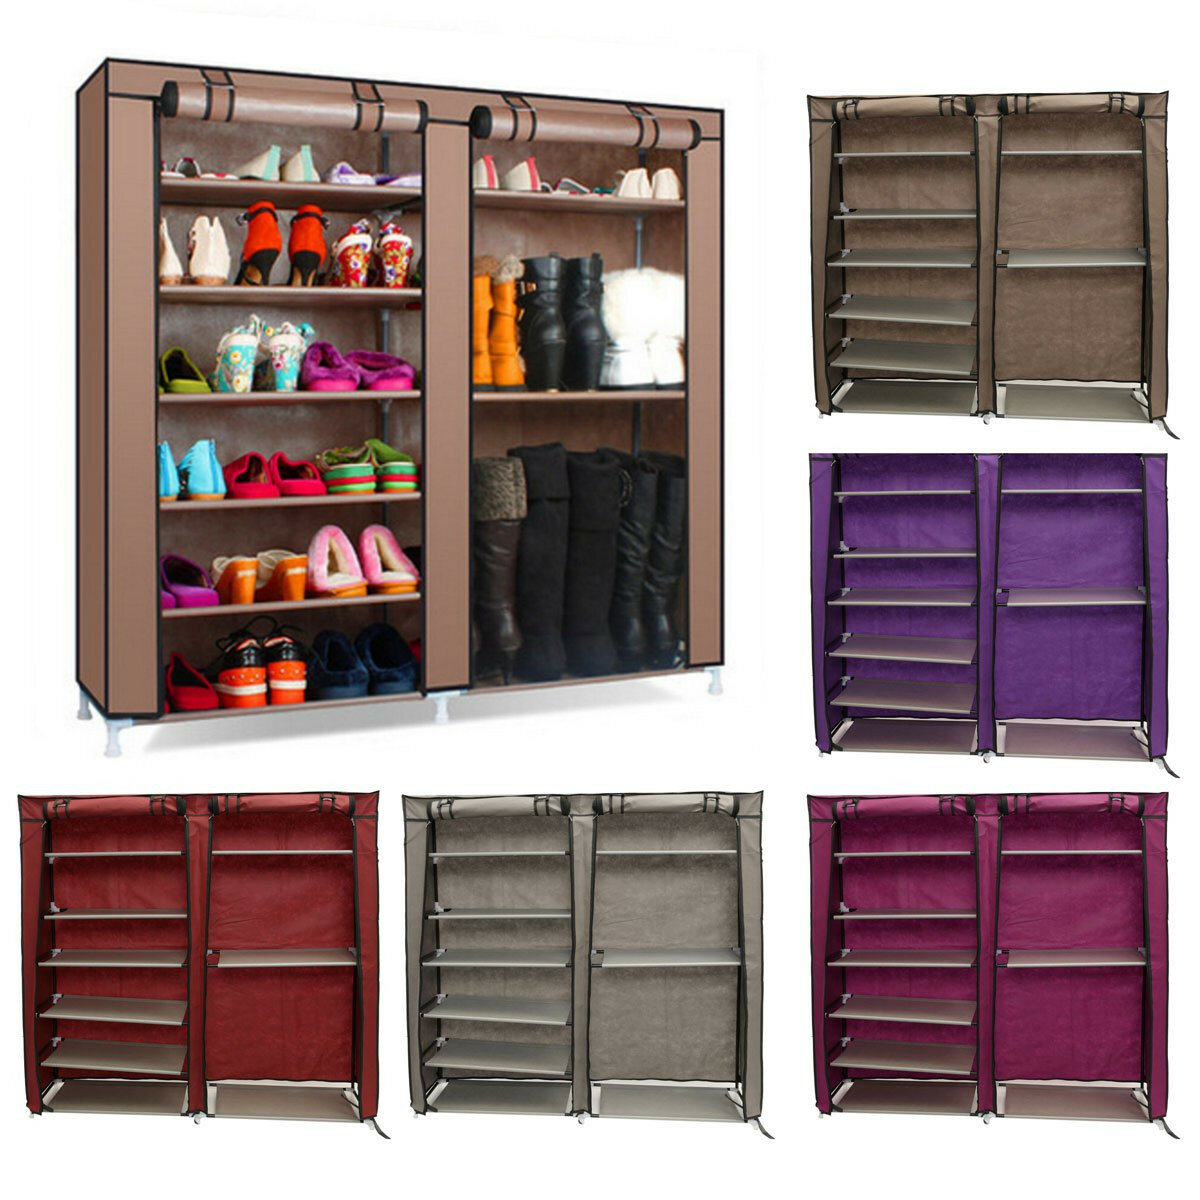 6 Tier Covered Shoes Rack DIY Storage Shelf Tidy Organizer Cabinet Closet Stand Dustproof  Cupboard